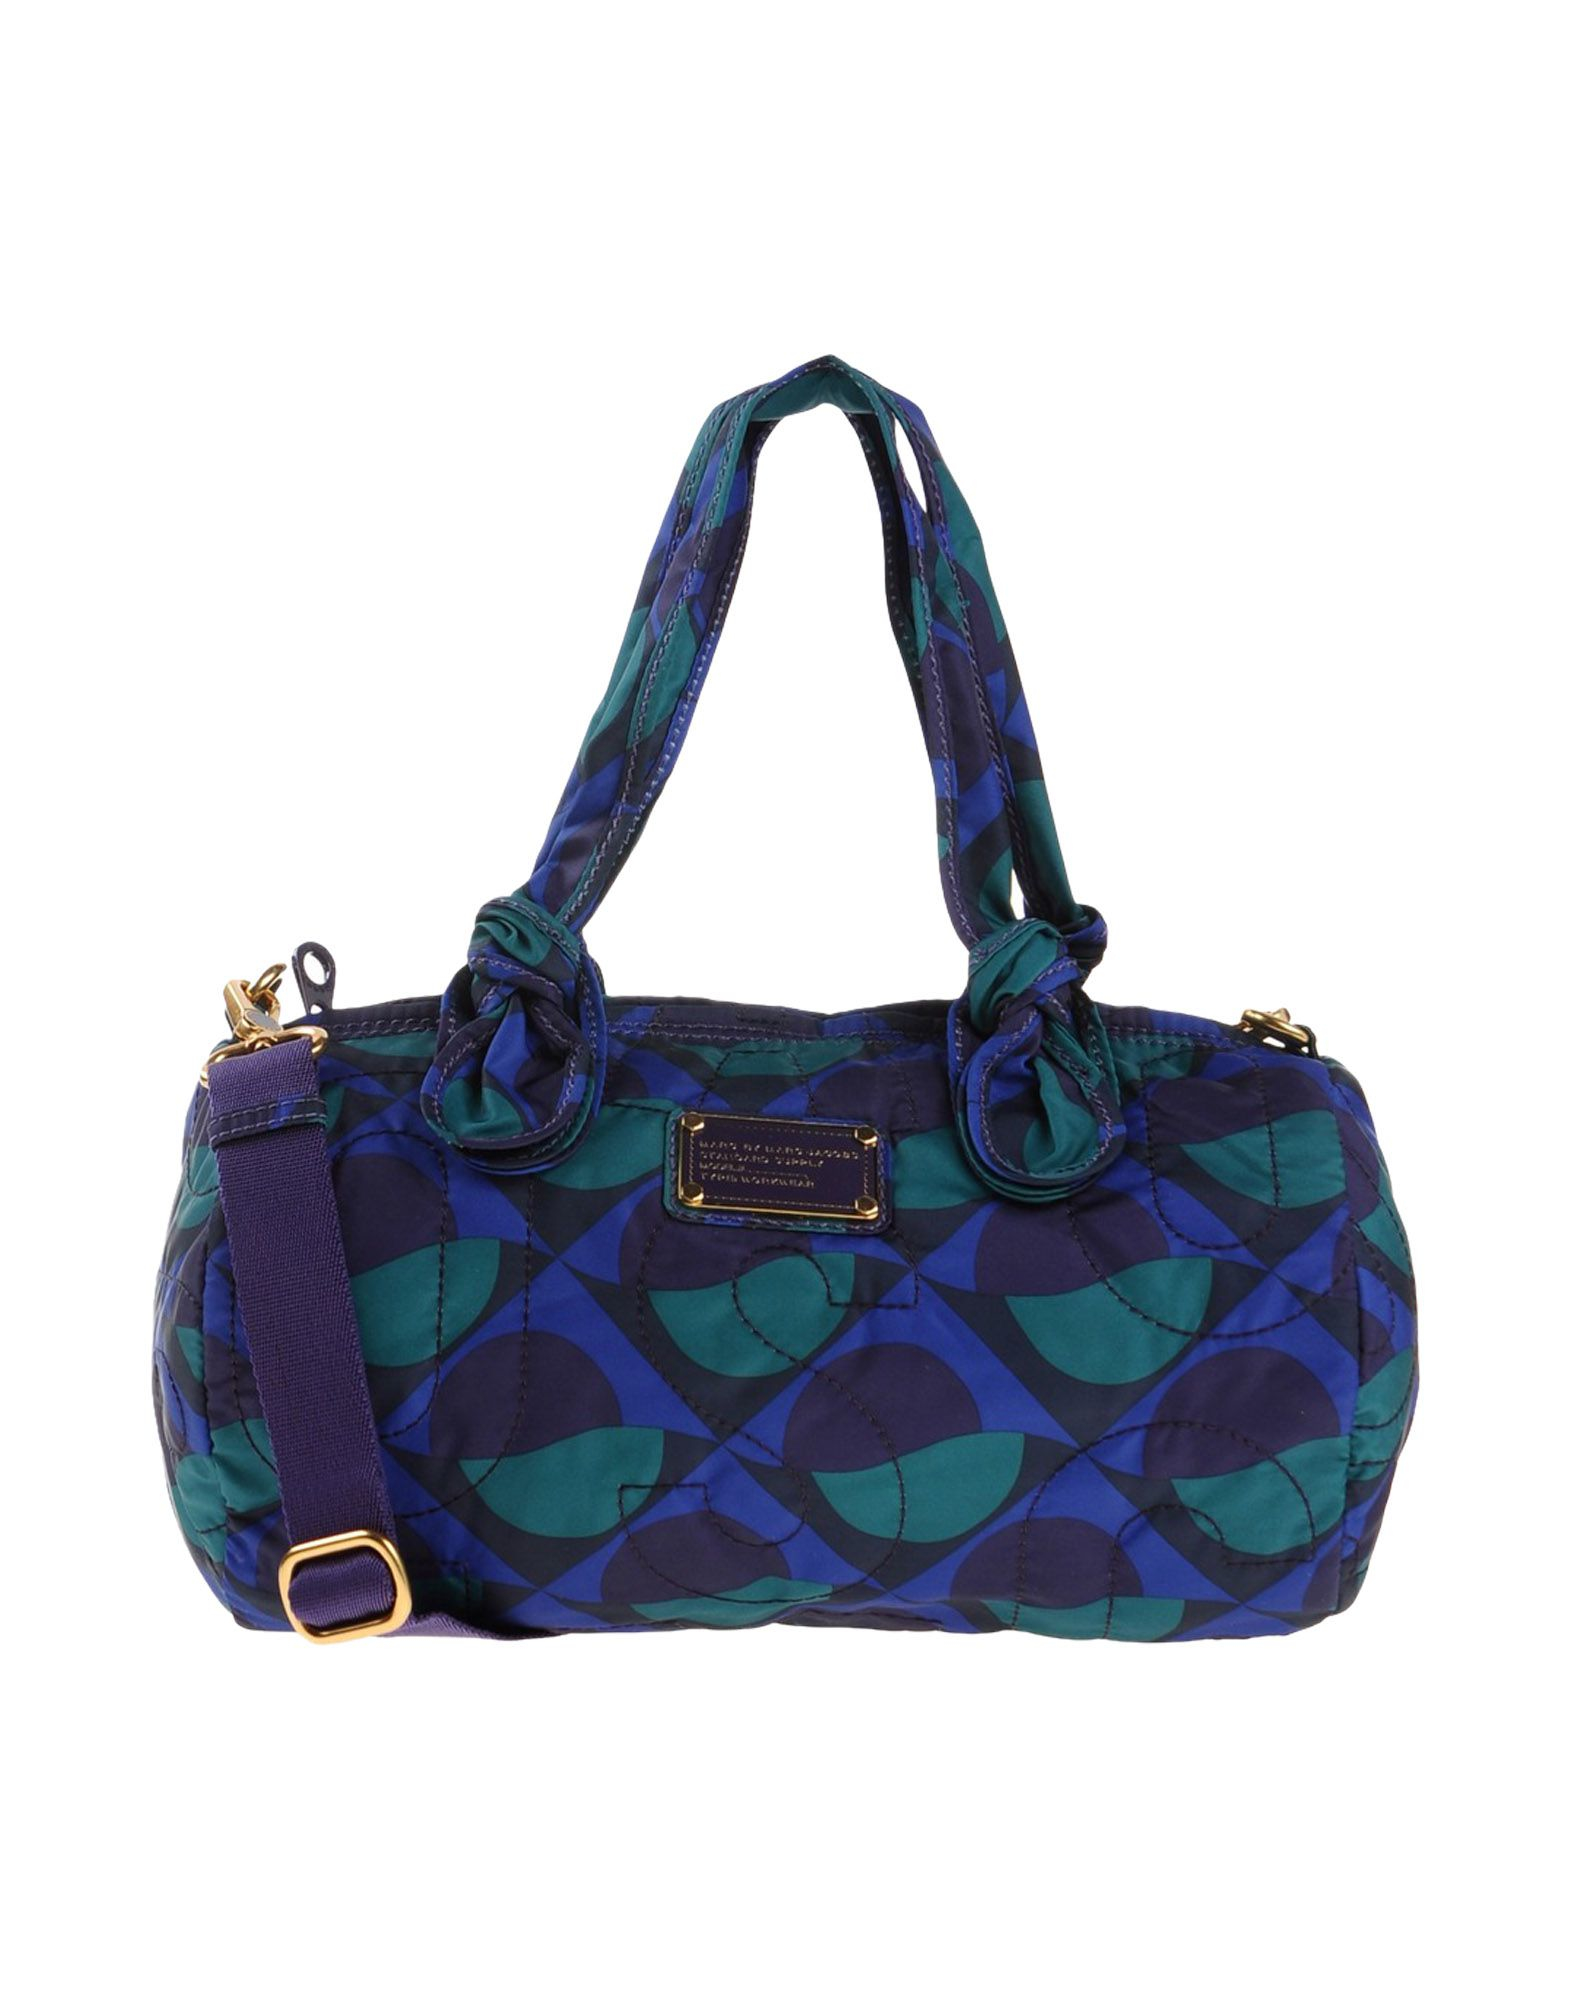 Marc by marc jacobs Ha...